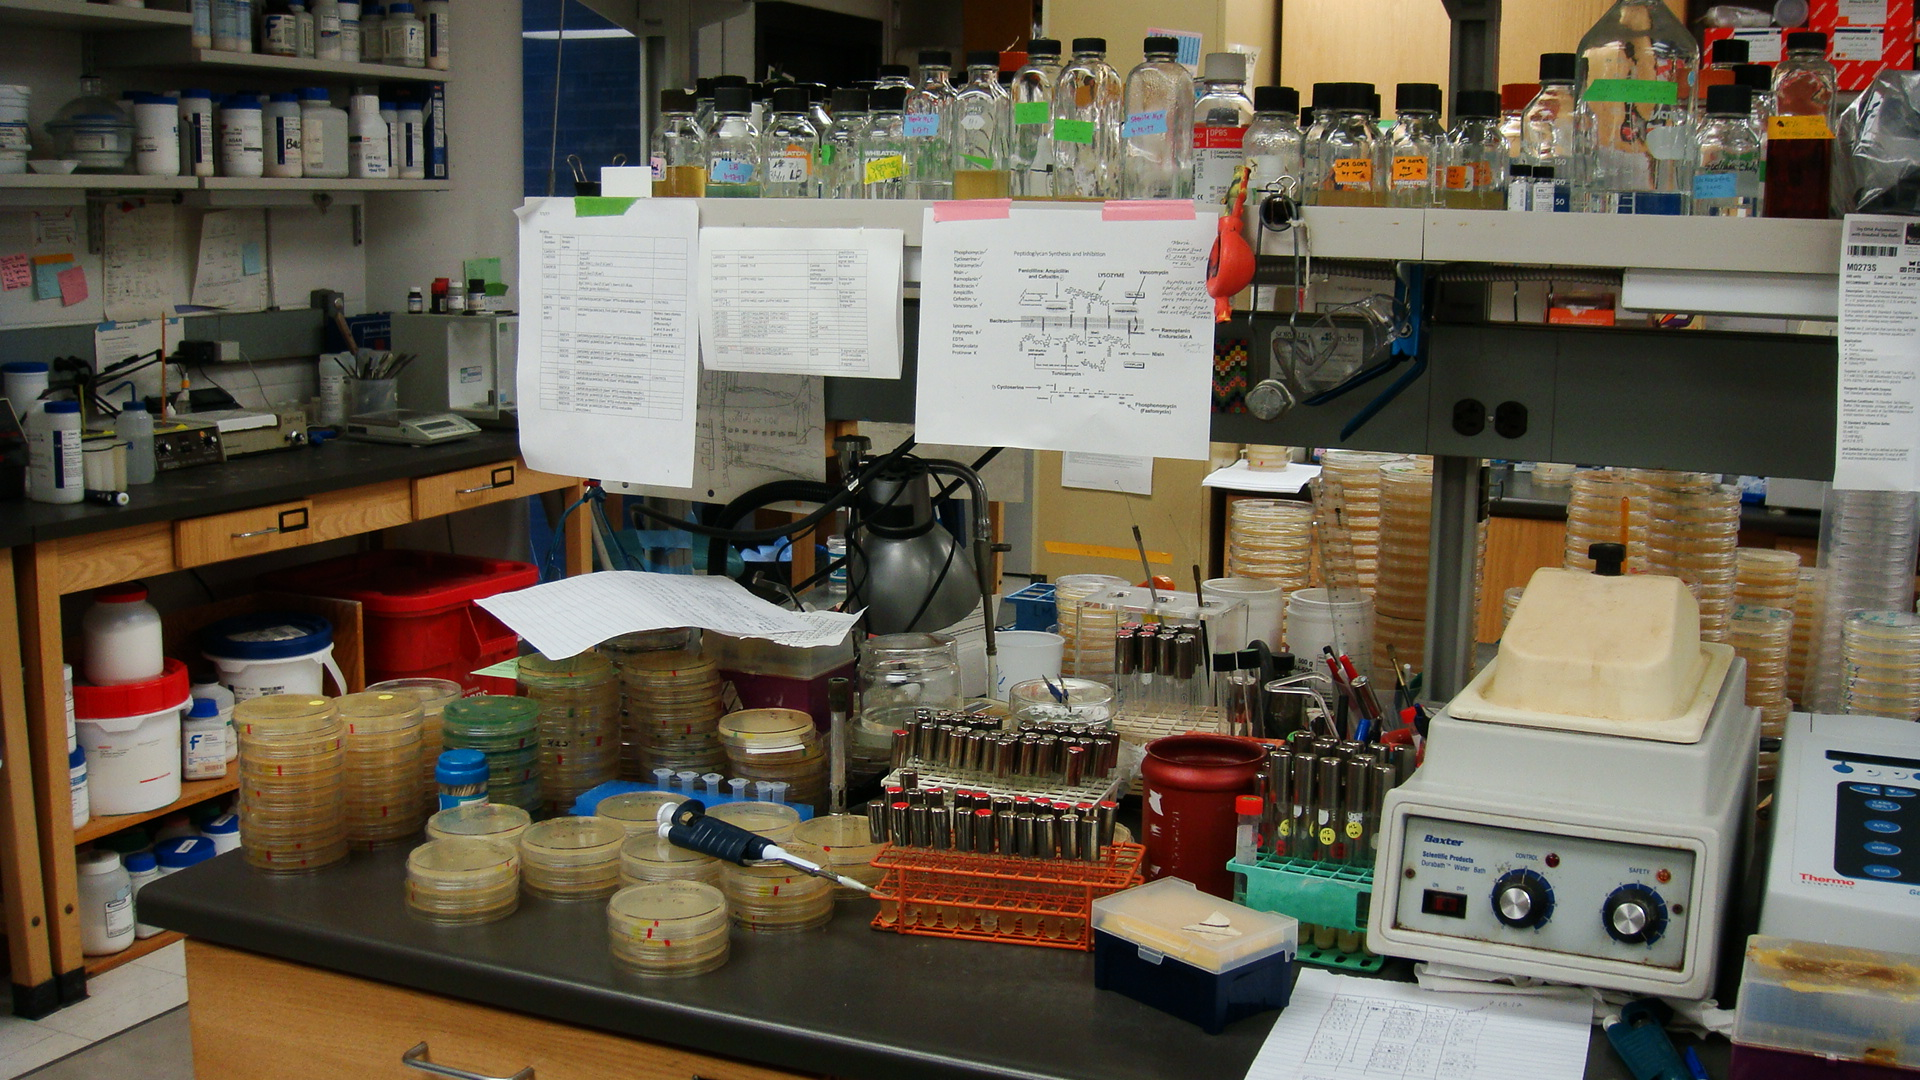 A particularly busy week at Guananí's lab bench. Photo by Guananí Gómex.